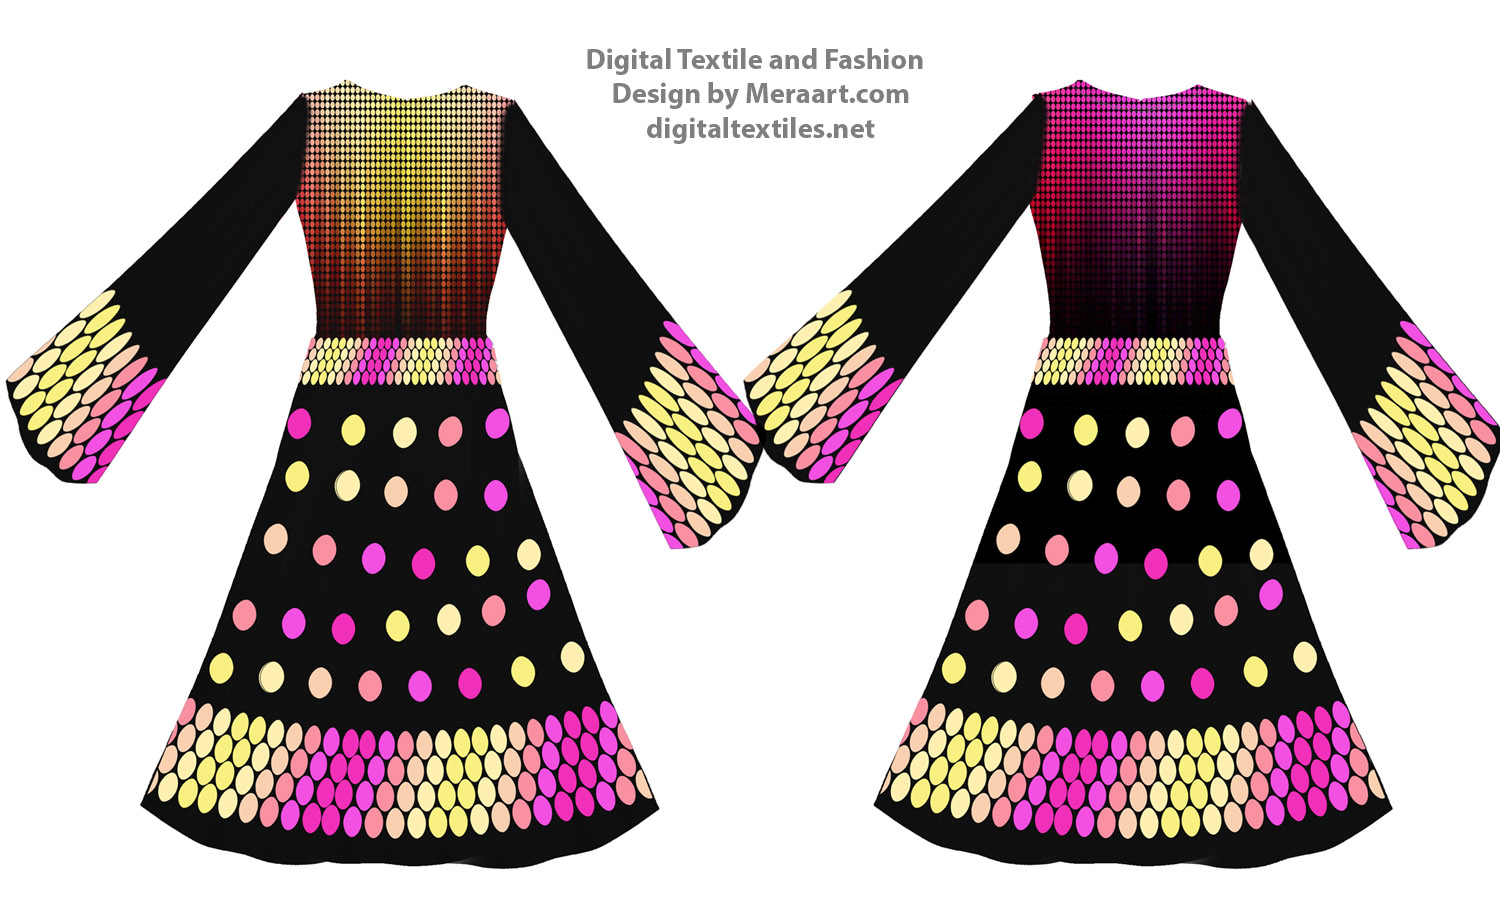 Digital textile fashion prints designer dress online servies (6)